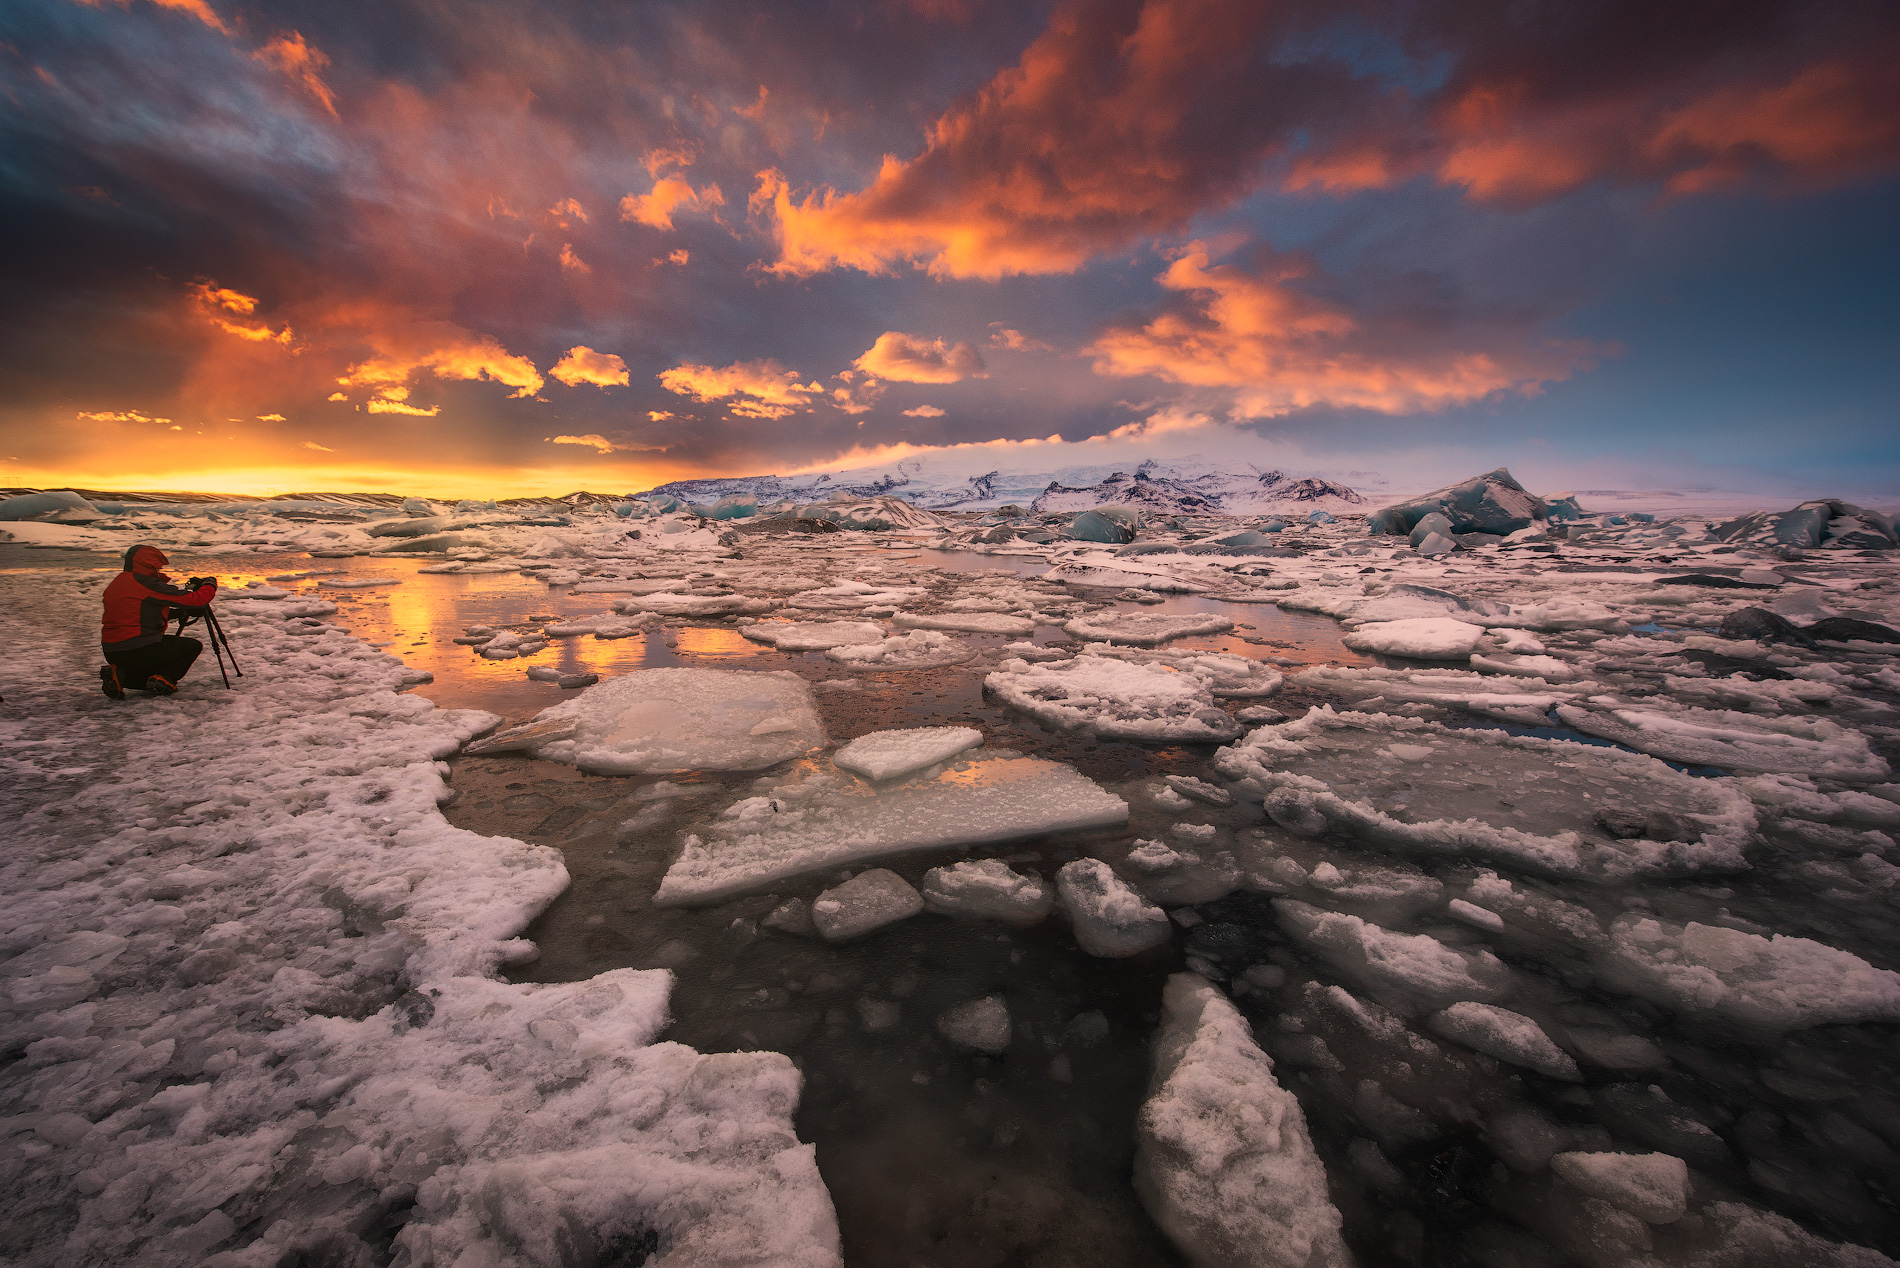 What it's Like to Photograph Iceland in September